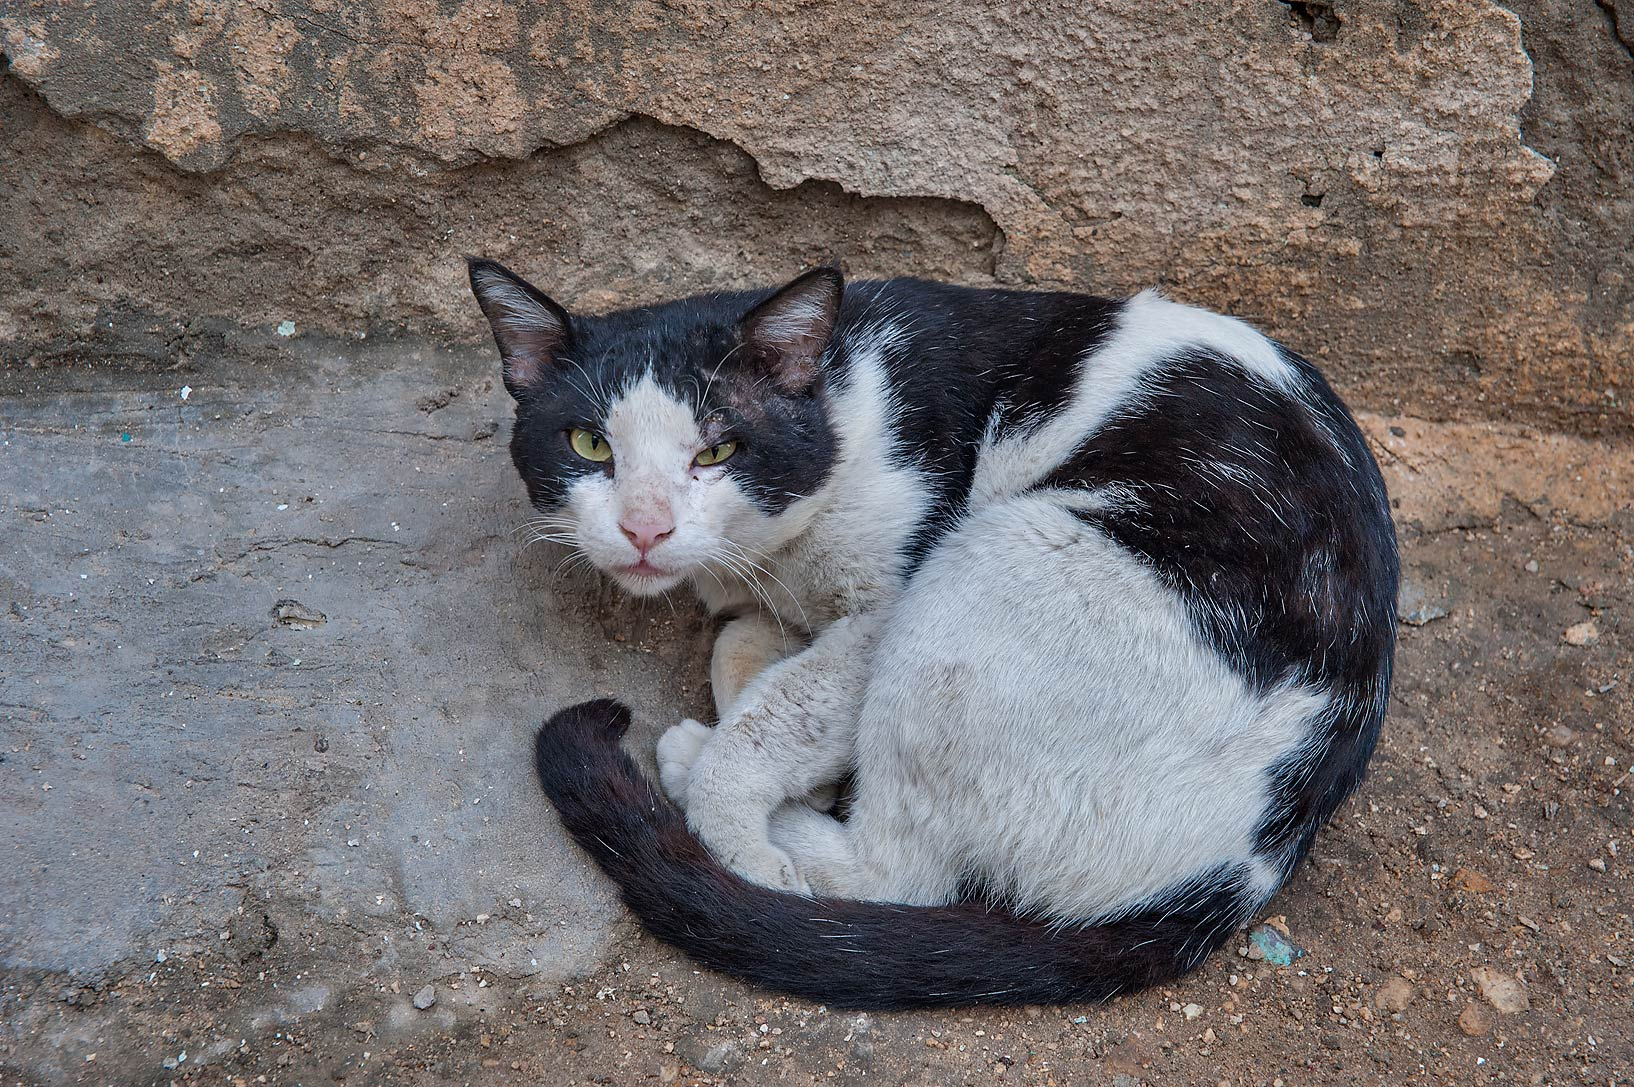 Black and white cat near Abdullah Bin Thani St. in Musheirib area. Doha, Qatar